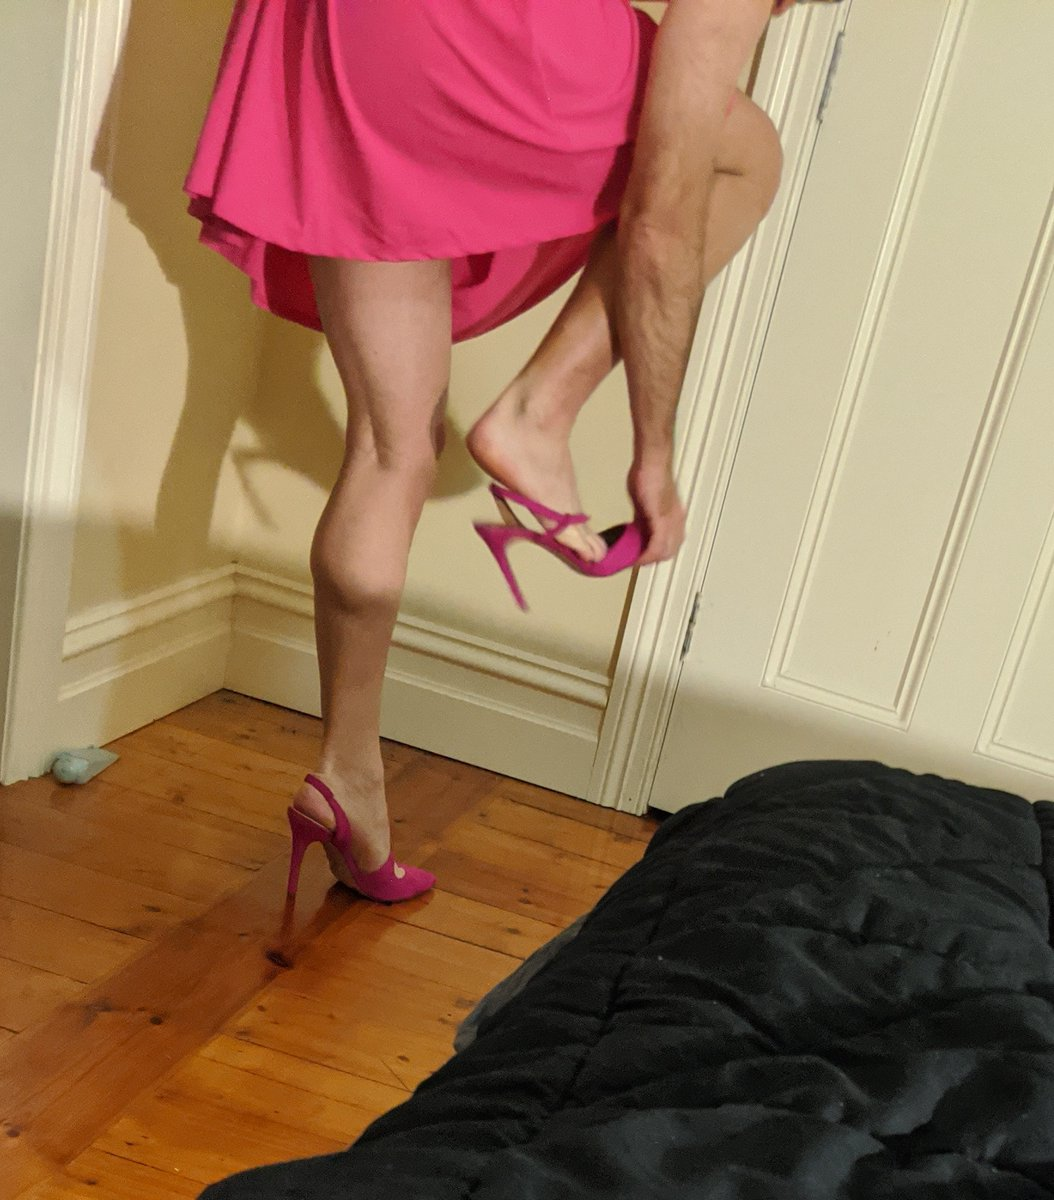 And the lovely #heels that went with it.  So whoever sent it... Thank you.  pic.twitter.com/eaZdWazq3b